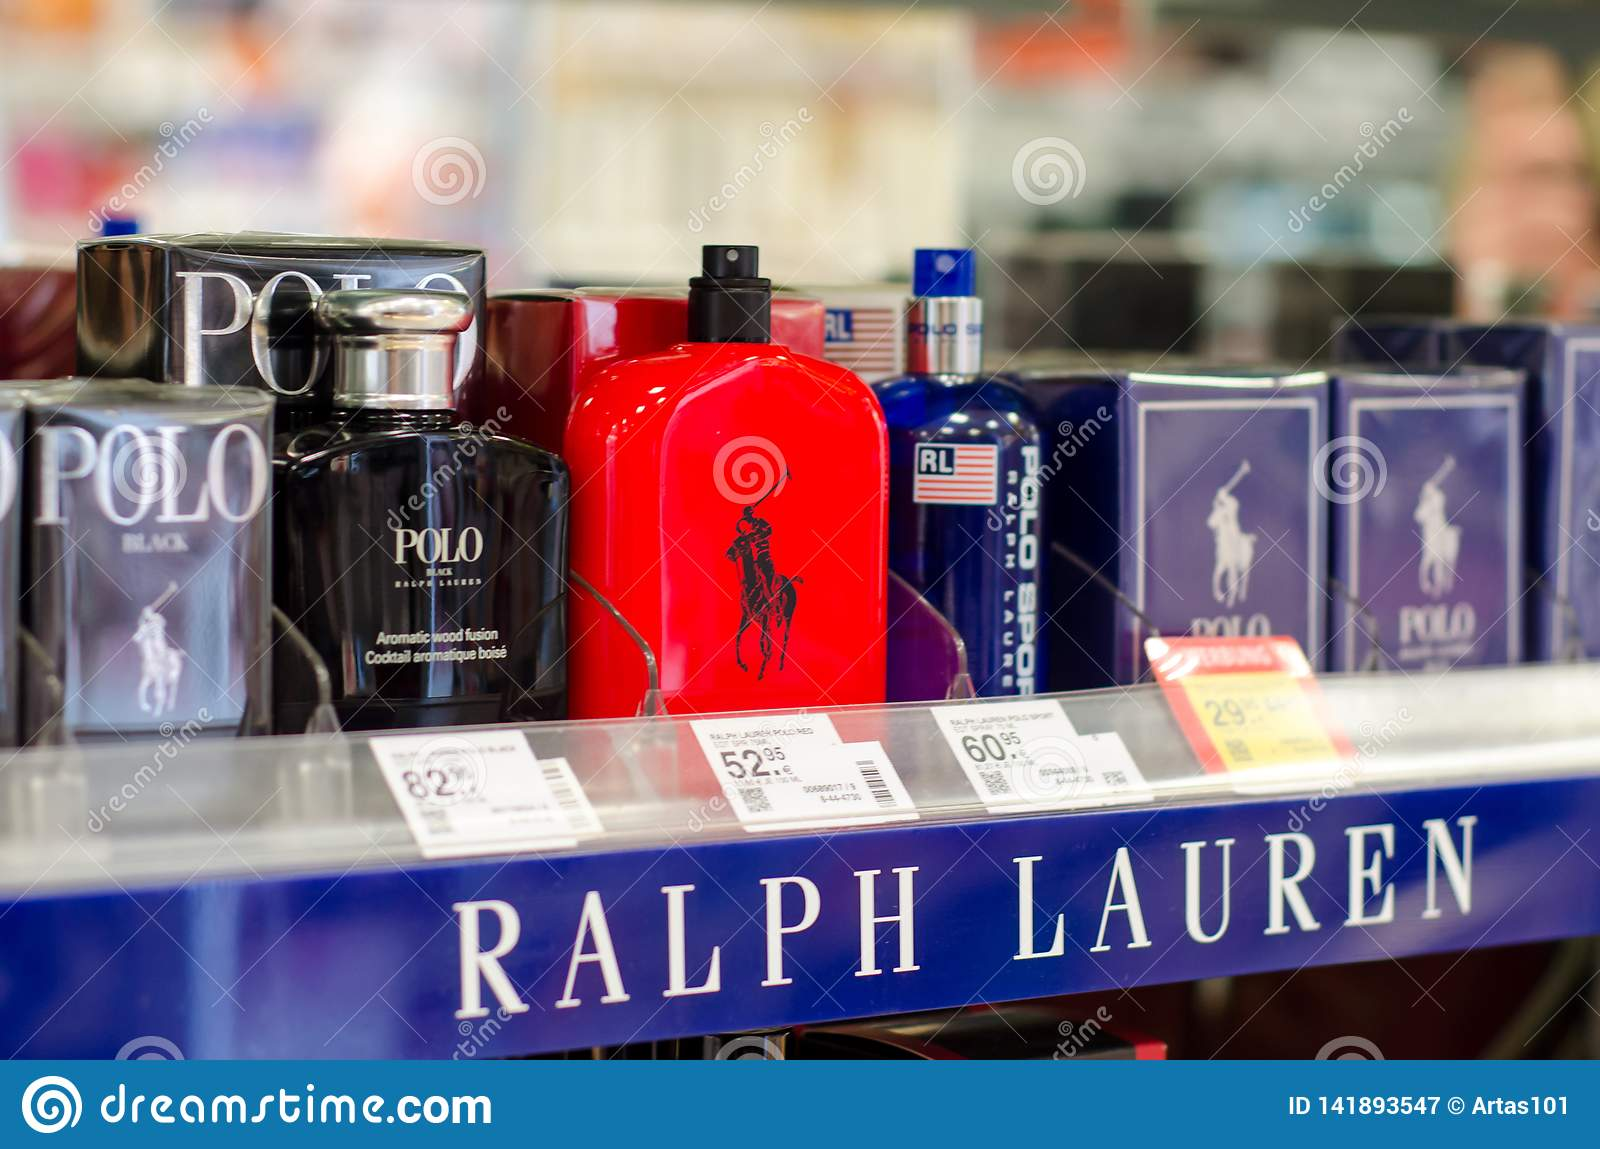 Soest, Germany - January 3, 2019: Polo Ralph Lauren Perfume for sale in the shop